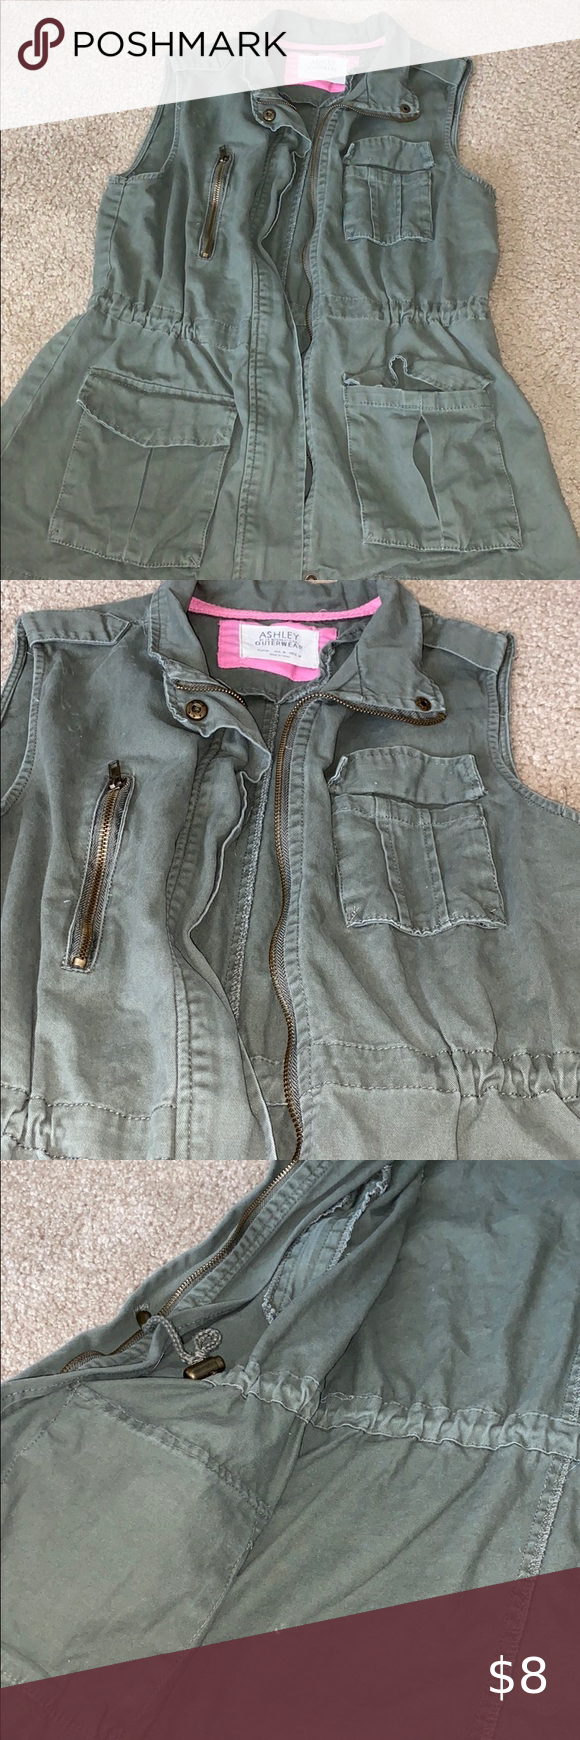 Ashley Outerwear Green Zip Up Vest In Great Condition Lots Of Pockets And Looks Good Zipped And Un Zipped Jackets Coats Vests Outerwear Zip Ups Zip [ 1740 x 580 Pixel ]